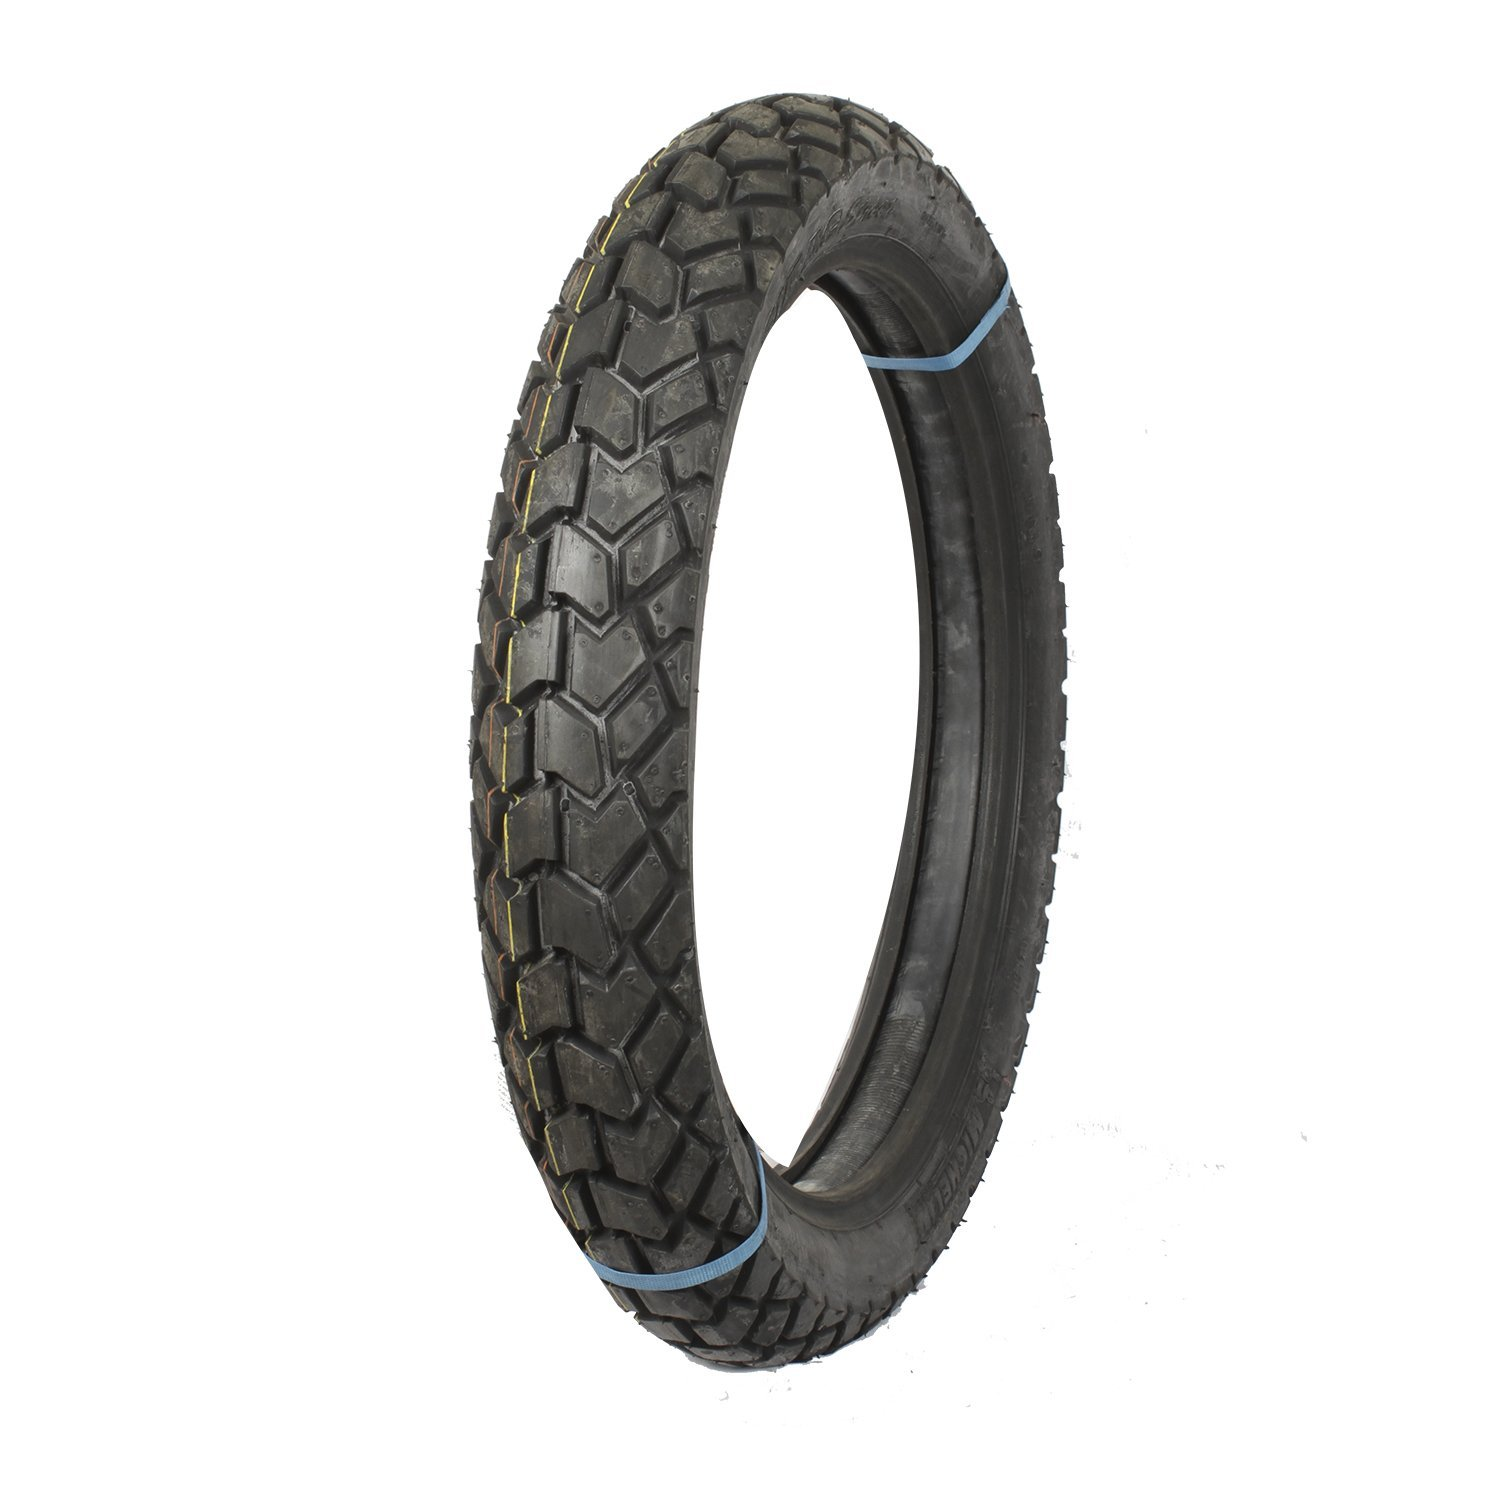 Michelin Sirac Street 100 90 18 56p Tube Type Motorcycle Tyre Rear Home Shipment Mch077 Amazon In Car Motorbike